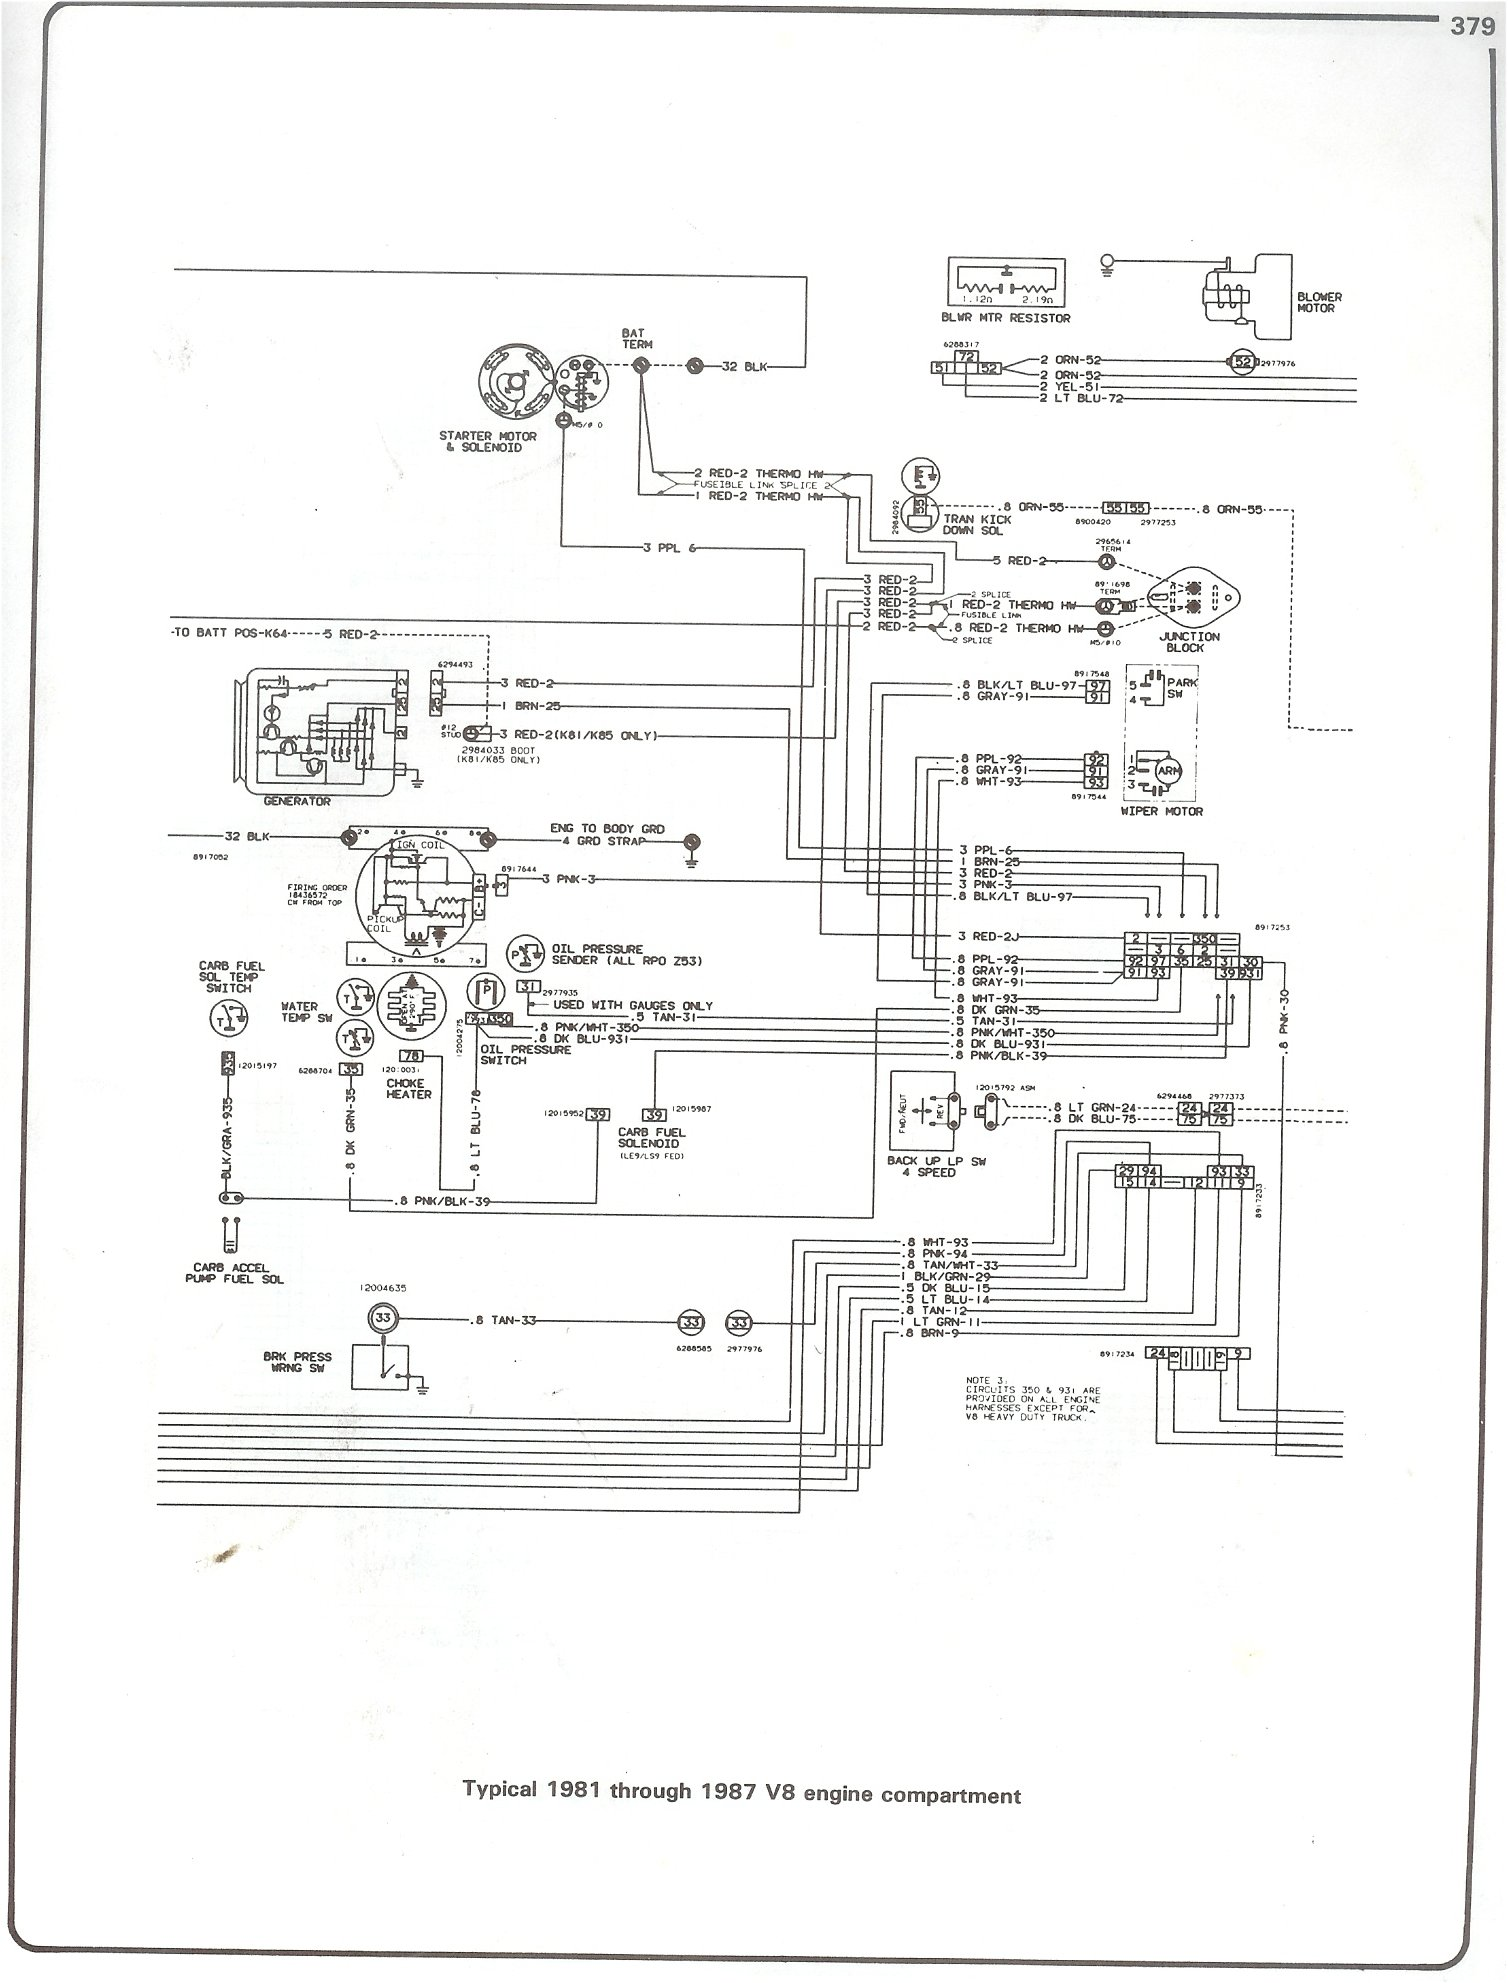 Complete 73 87 Wiring Diagrams Diagram Along With 1990 Dodge Ram W250 Fuse Box 81 V8 Engine Compartment